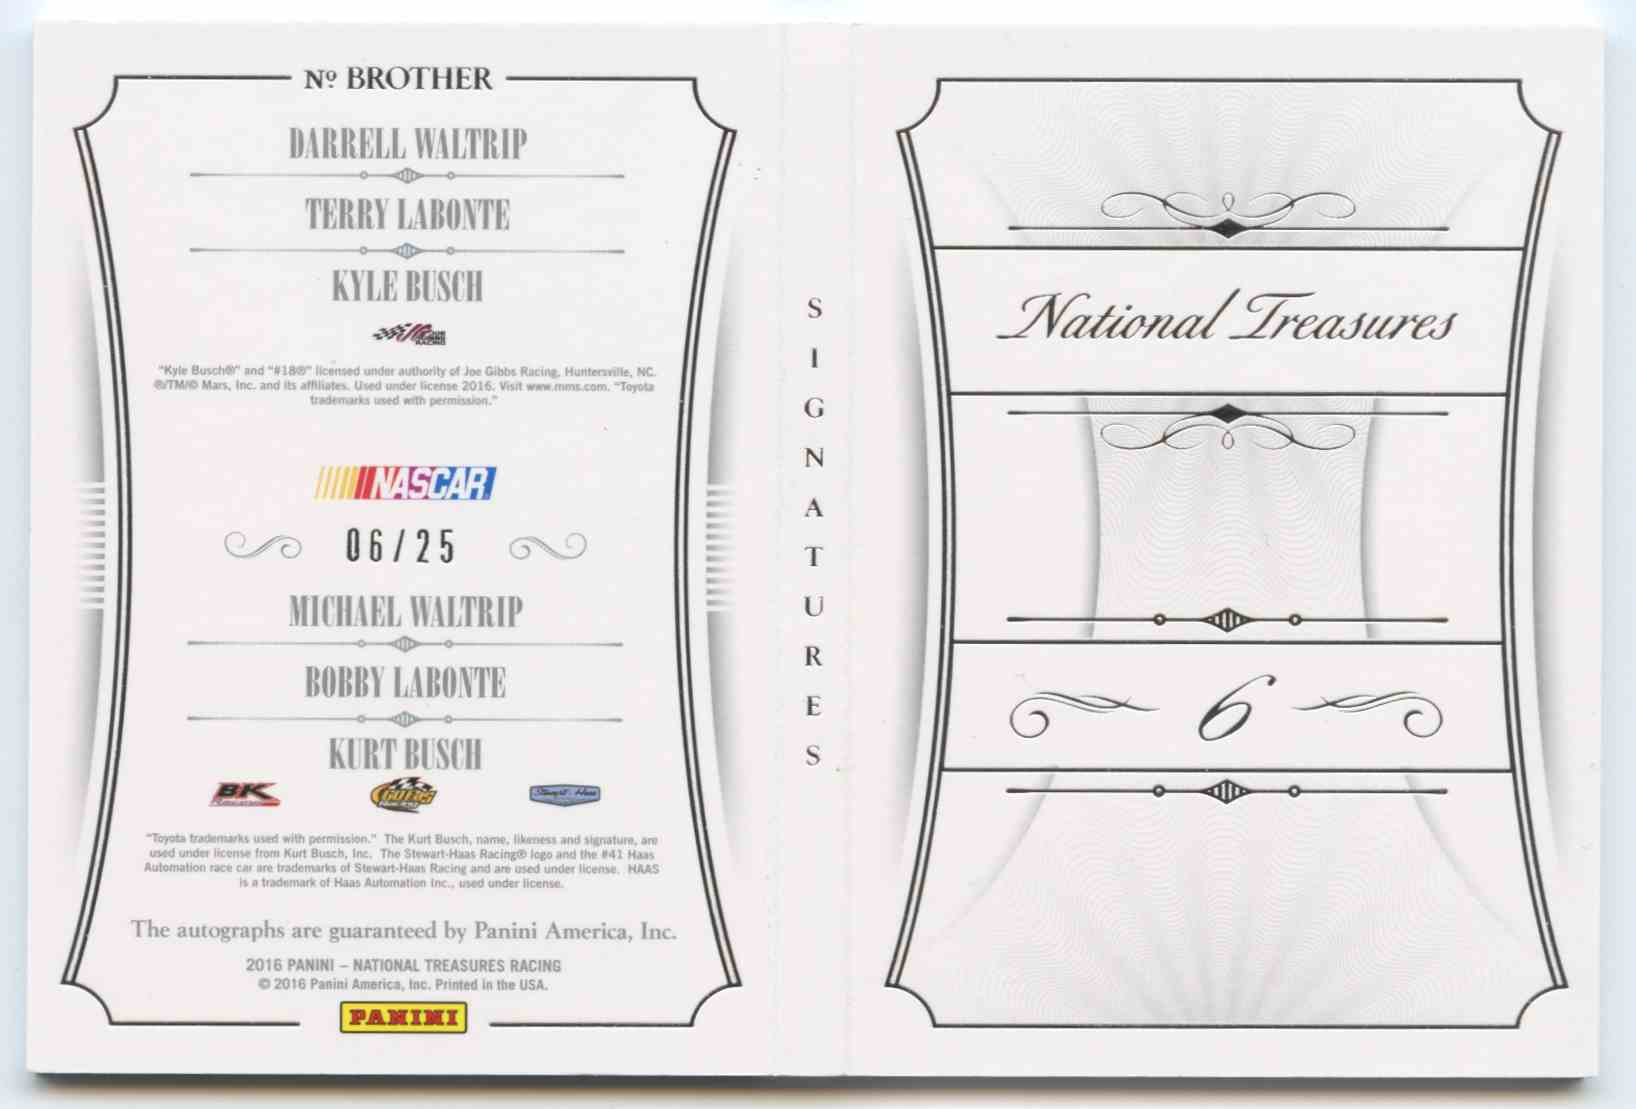 Arizona cardinals mvp crystal earrings likewise Nutz Or Gutz likewise Pittsburgh steelers solar mobile moreover 2016 Panini National Treasures Six Signature Booklets Kyle Busch Darrell Waltrip Michael Waltrip Terry Labonte Bobby Labonte Kurt Busch BROTHER besides wonderstarproductions. on michael waltrip